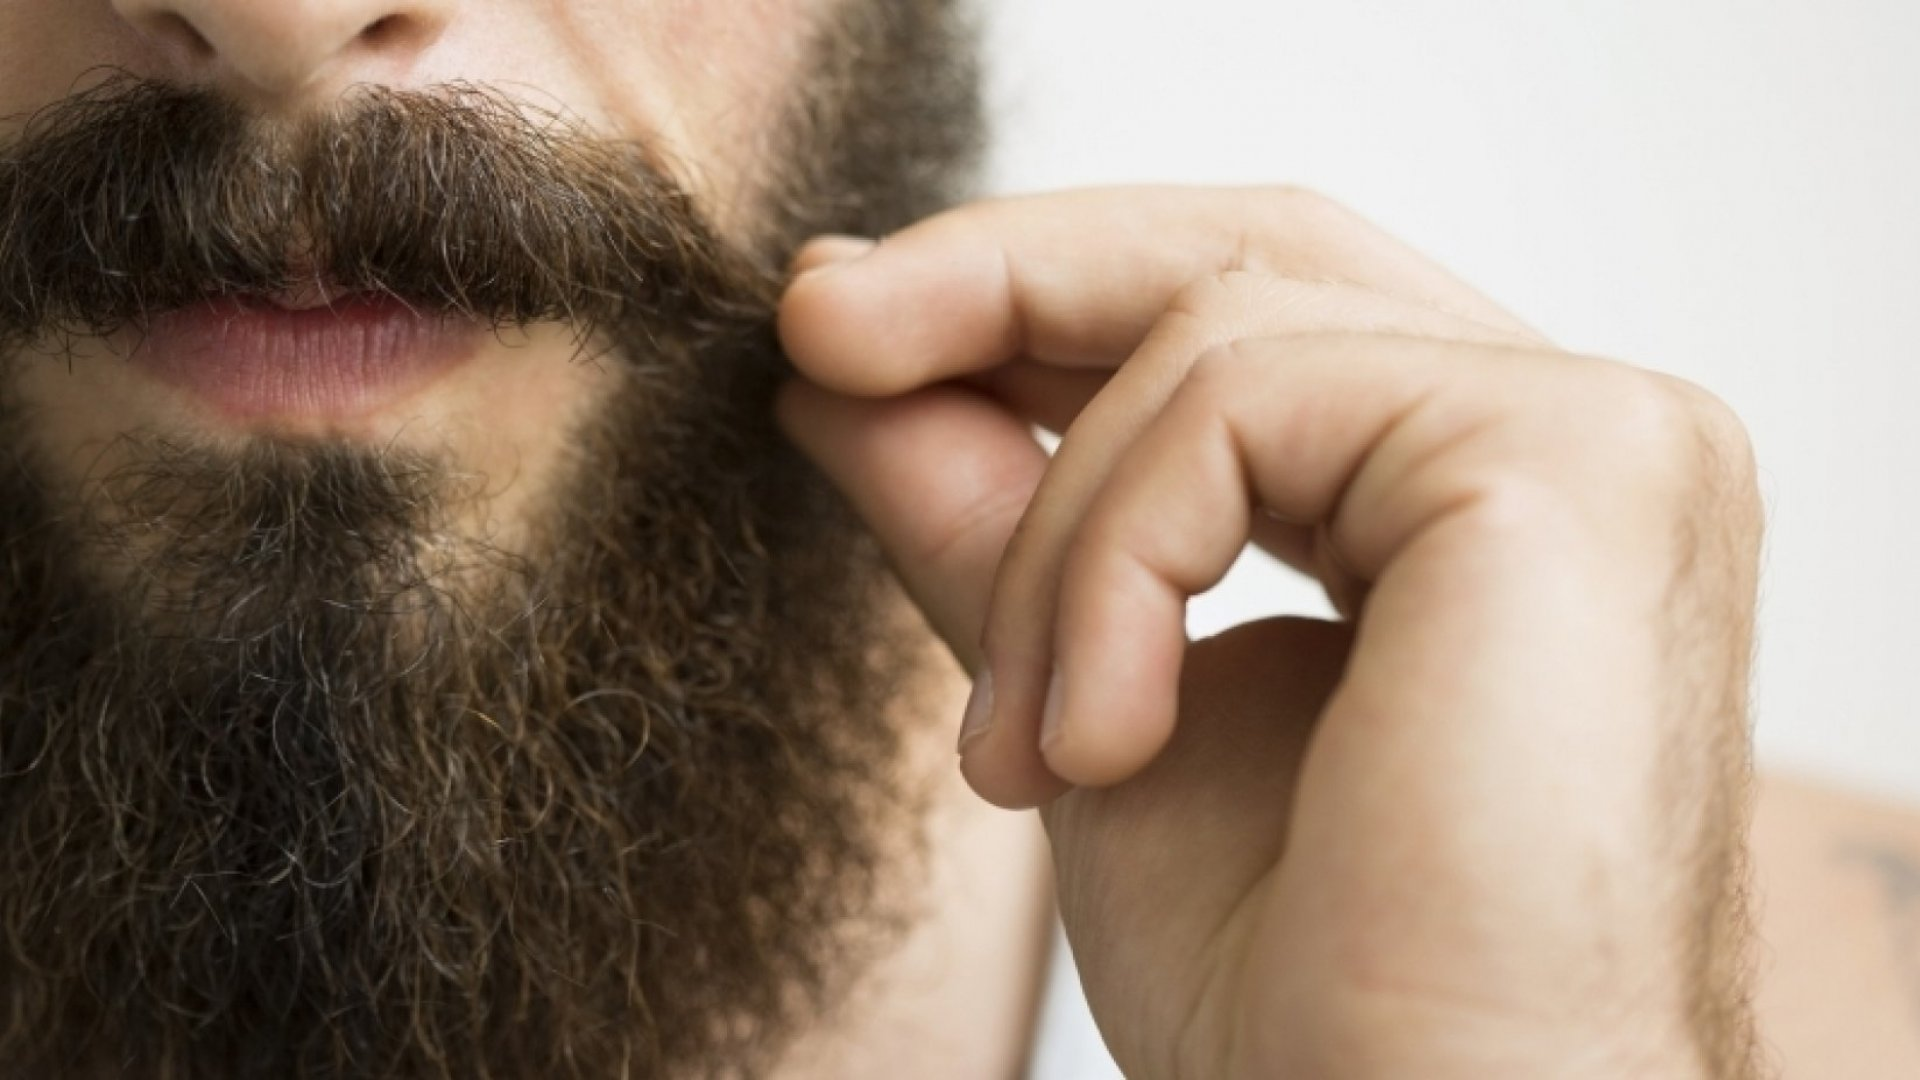 Lions and Camels and Beards (Oh My!): The Making of a Viral Video